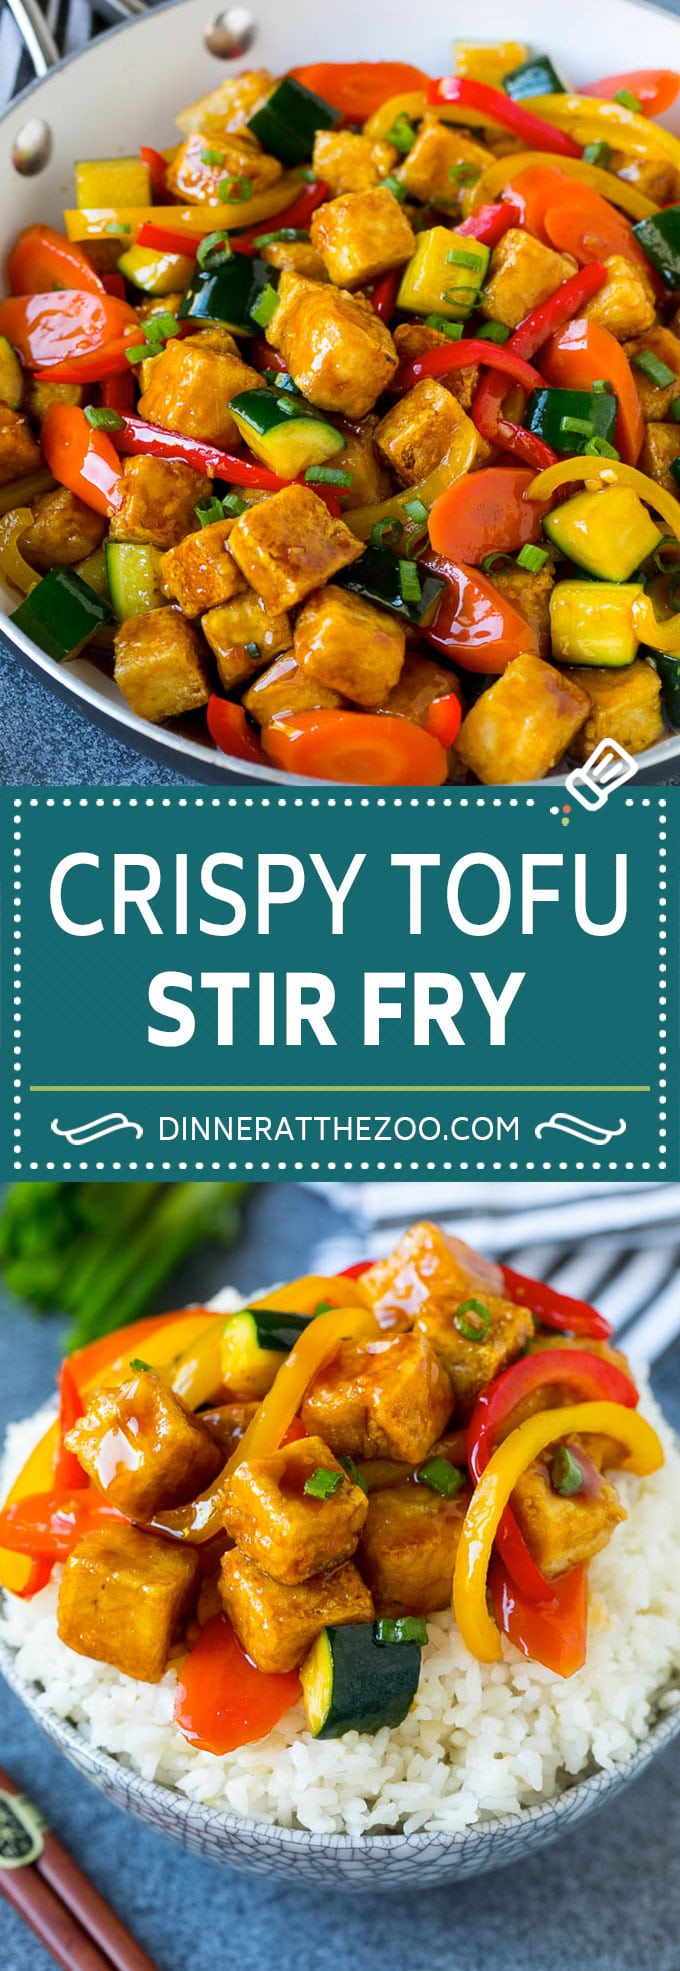 Tofu Stir Fry Dinner At The Zoo